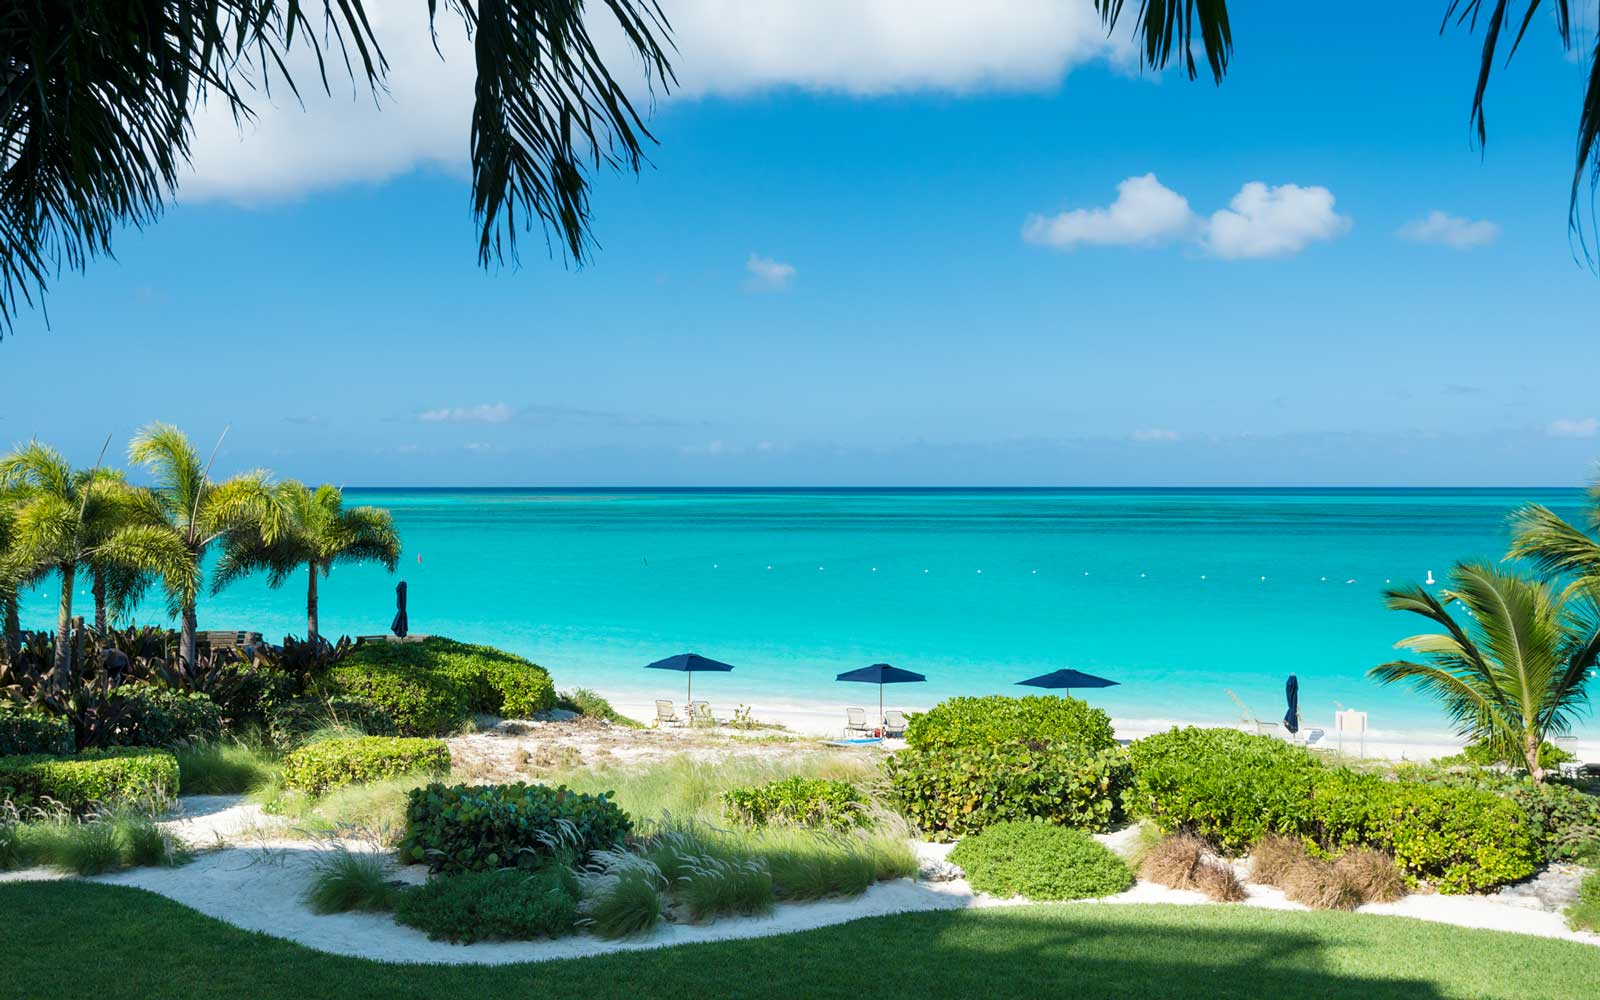 Save 30% off Stays at This Family-Friendly Beach Hotel in Turks & Caicos